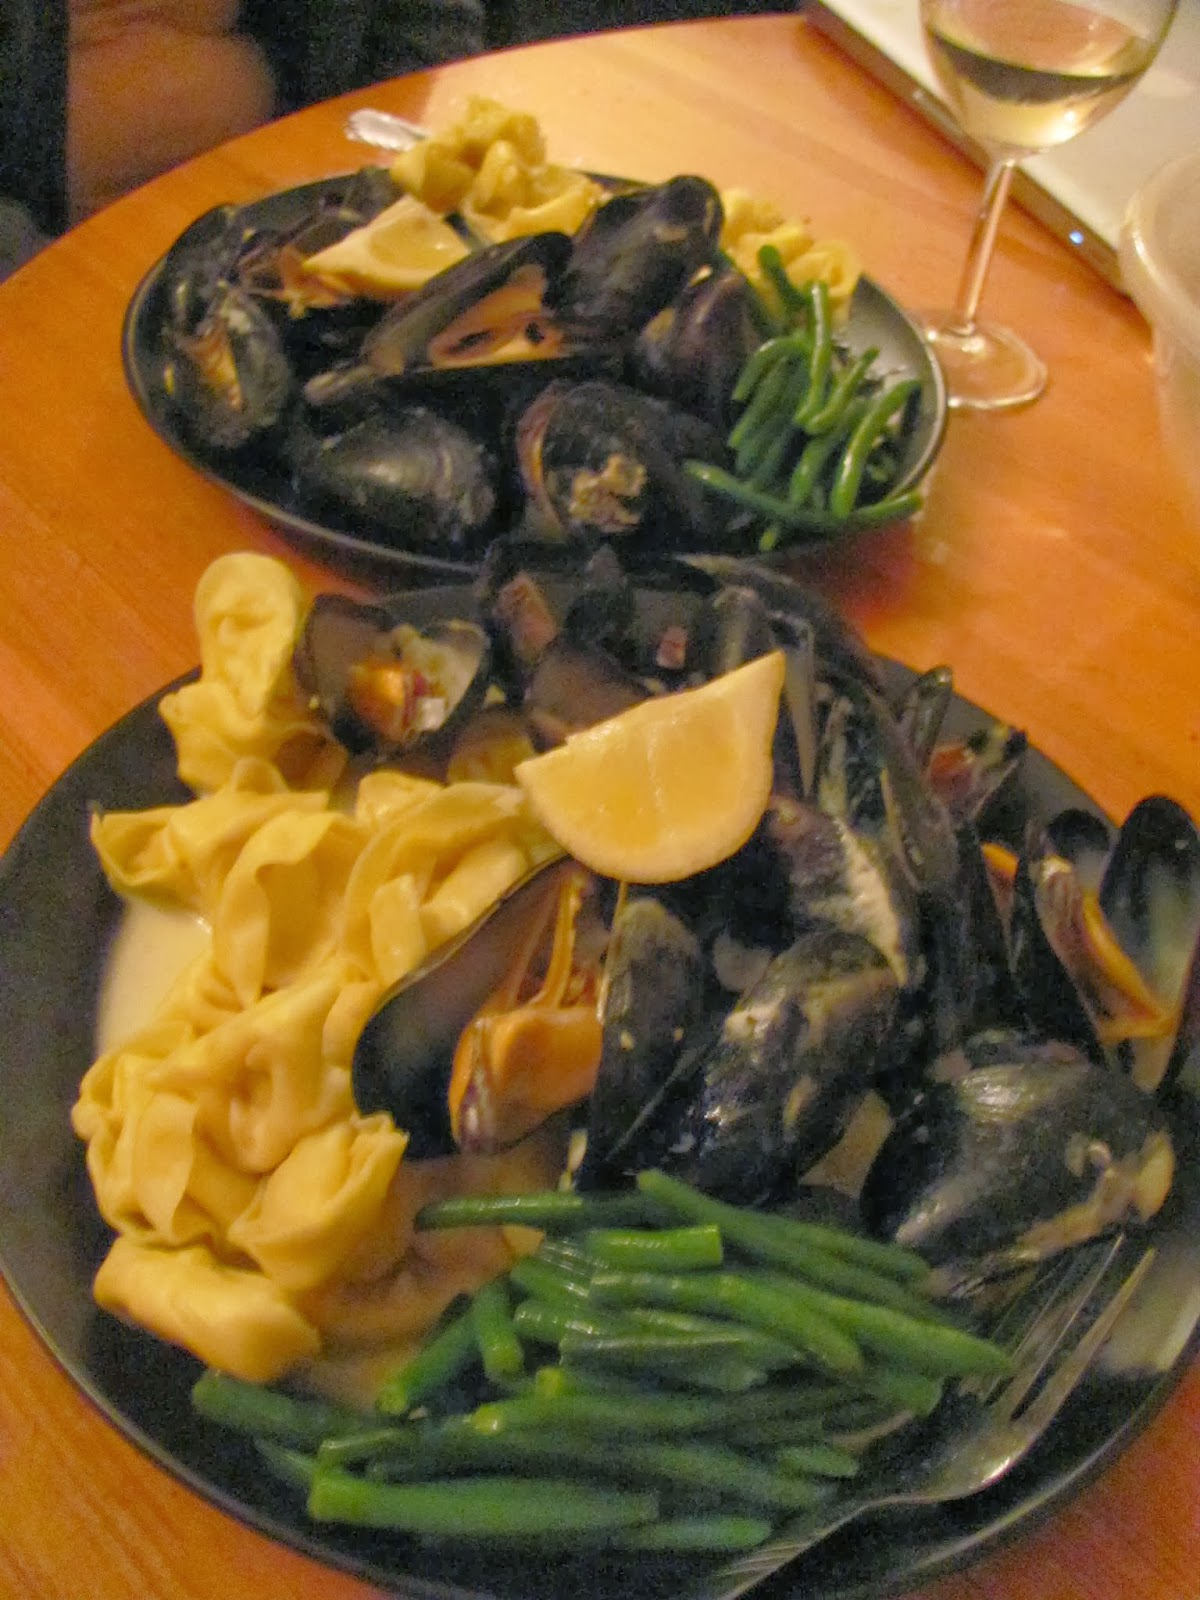 Mussels, Tortellini, Green Beans, and Cream Sauce